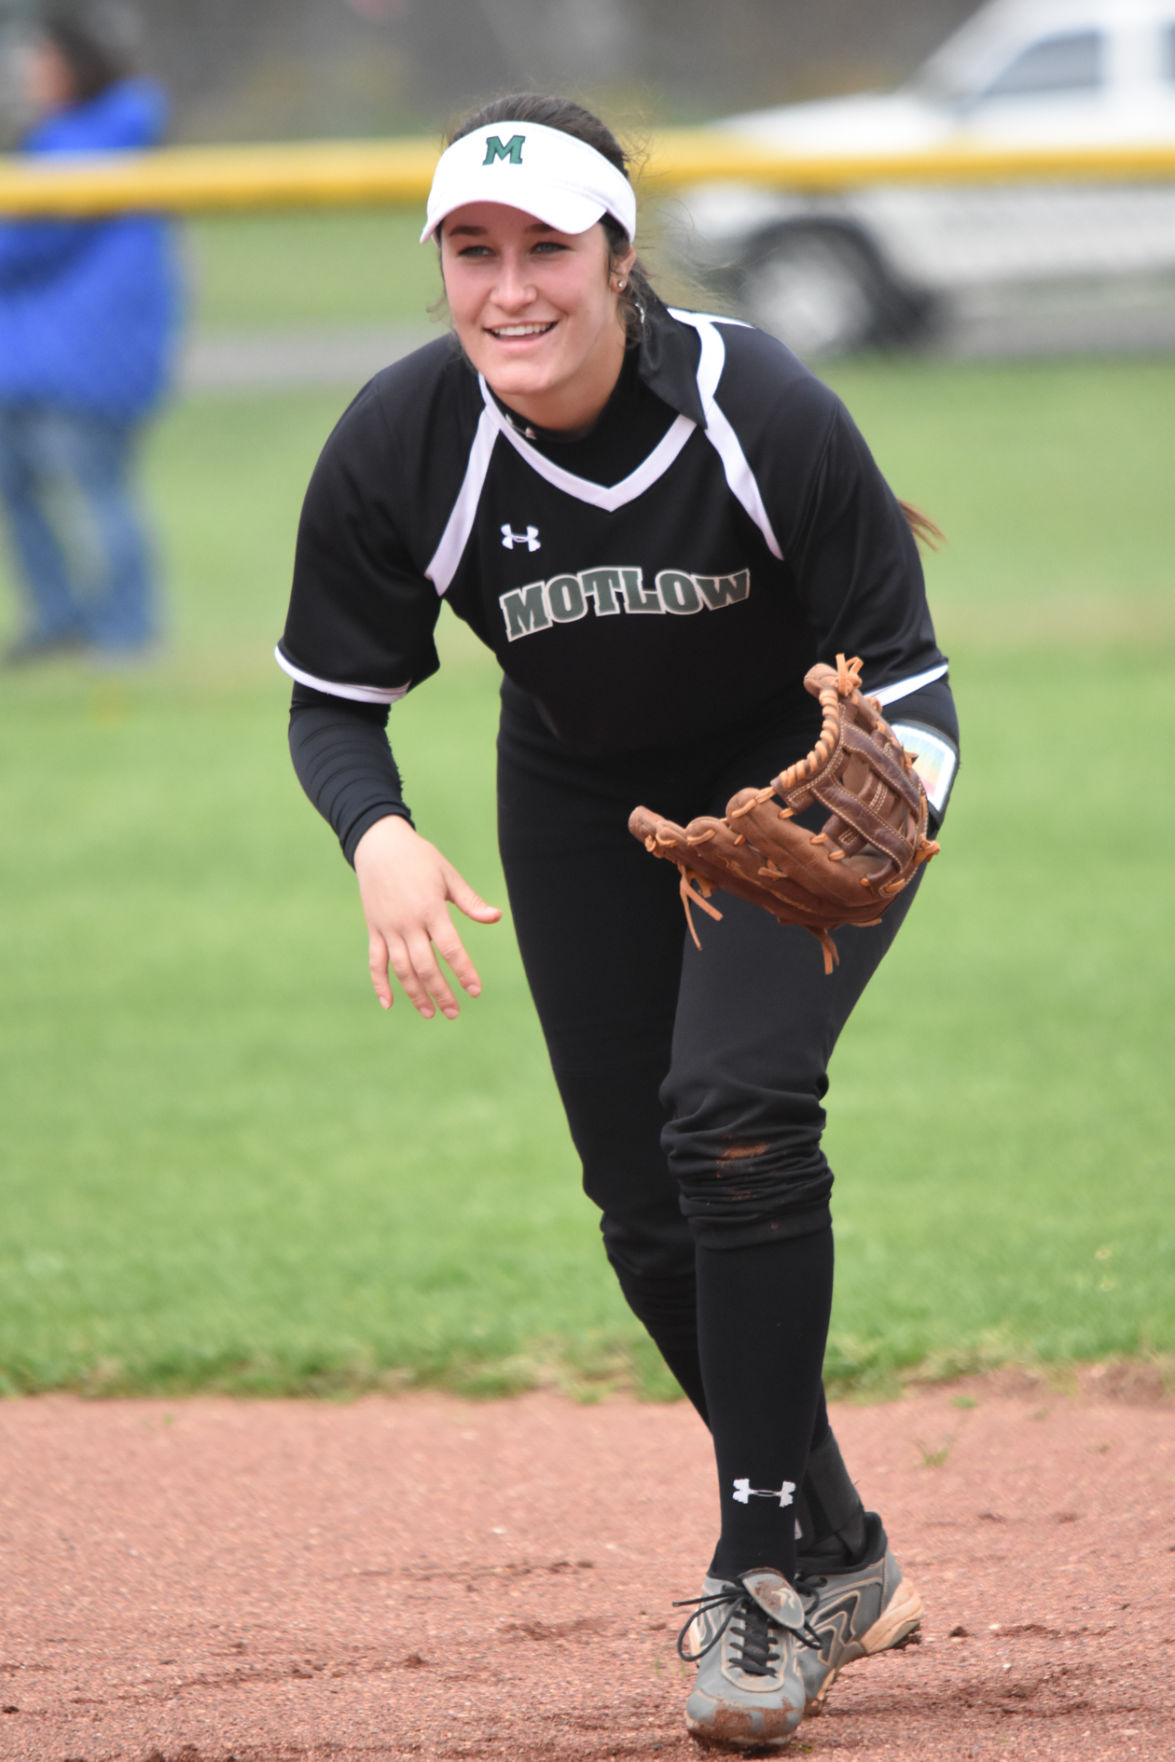 COLLEGE CHECK UP: Haley Hinshaw more relaxed in college setting